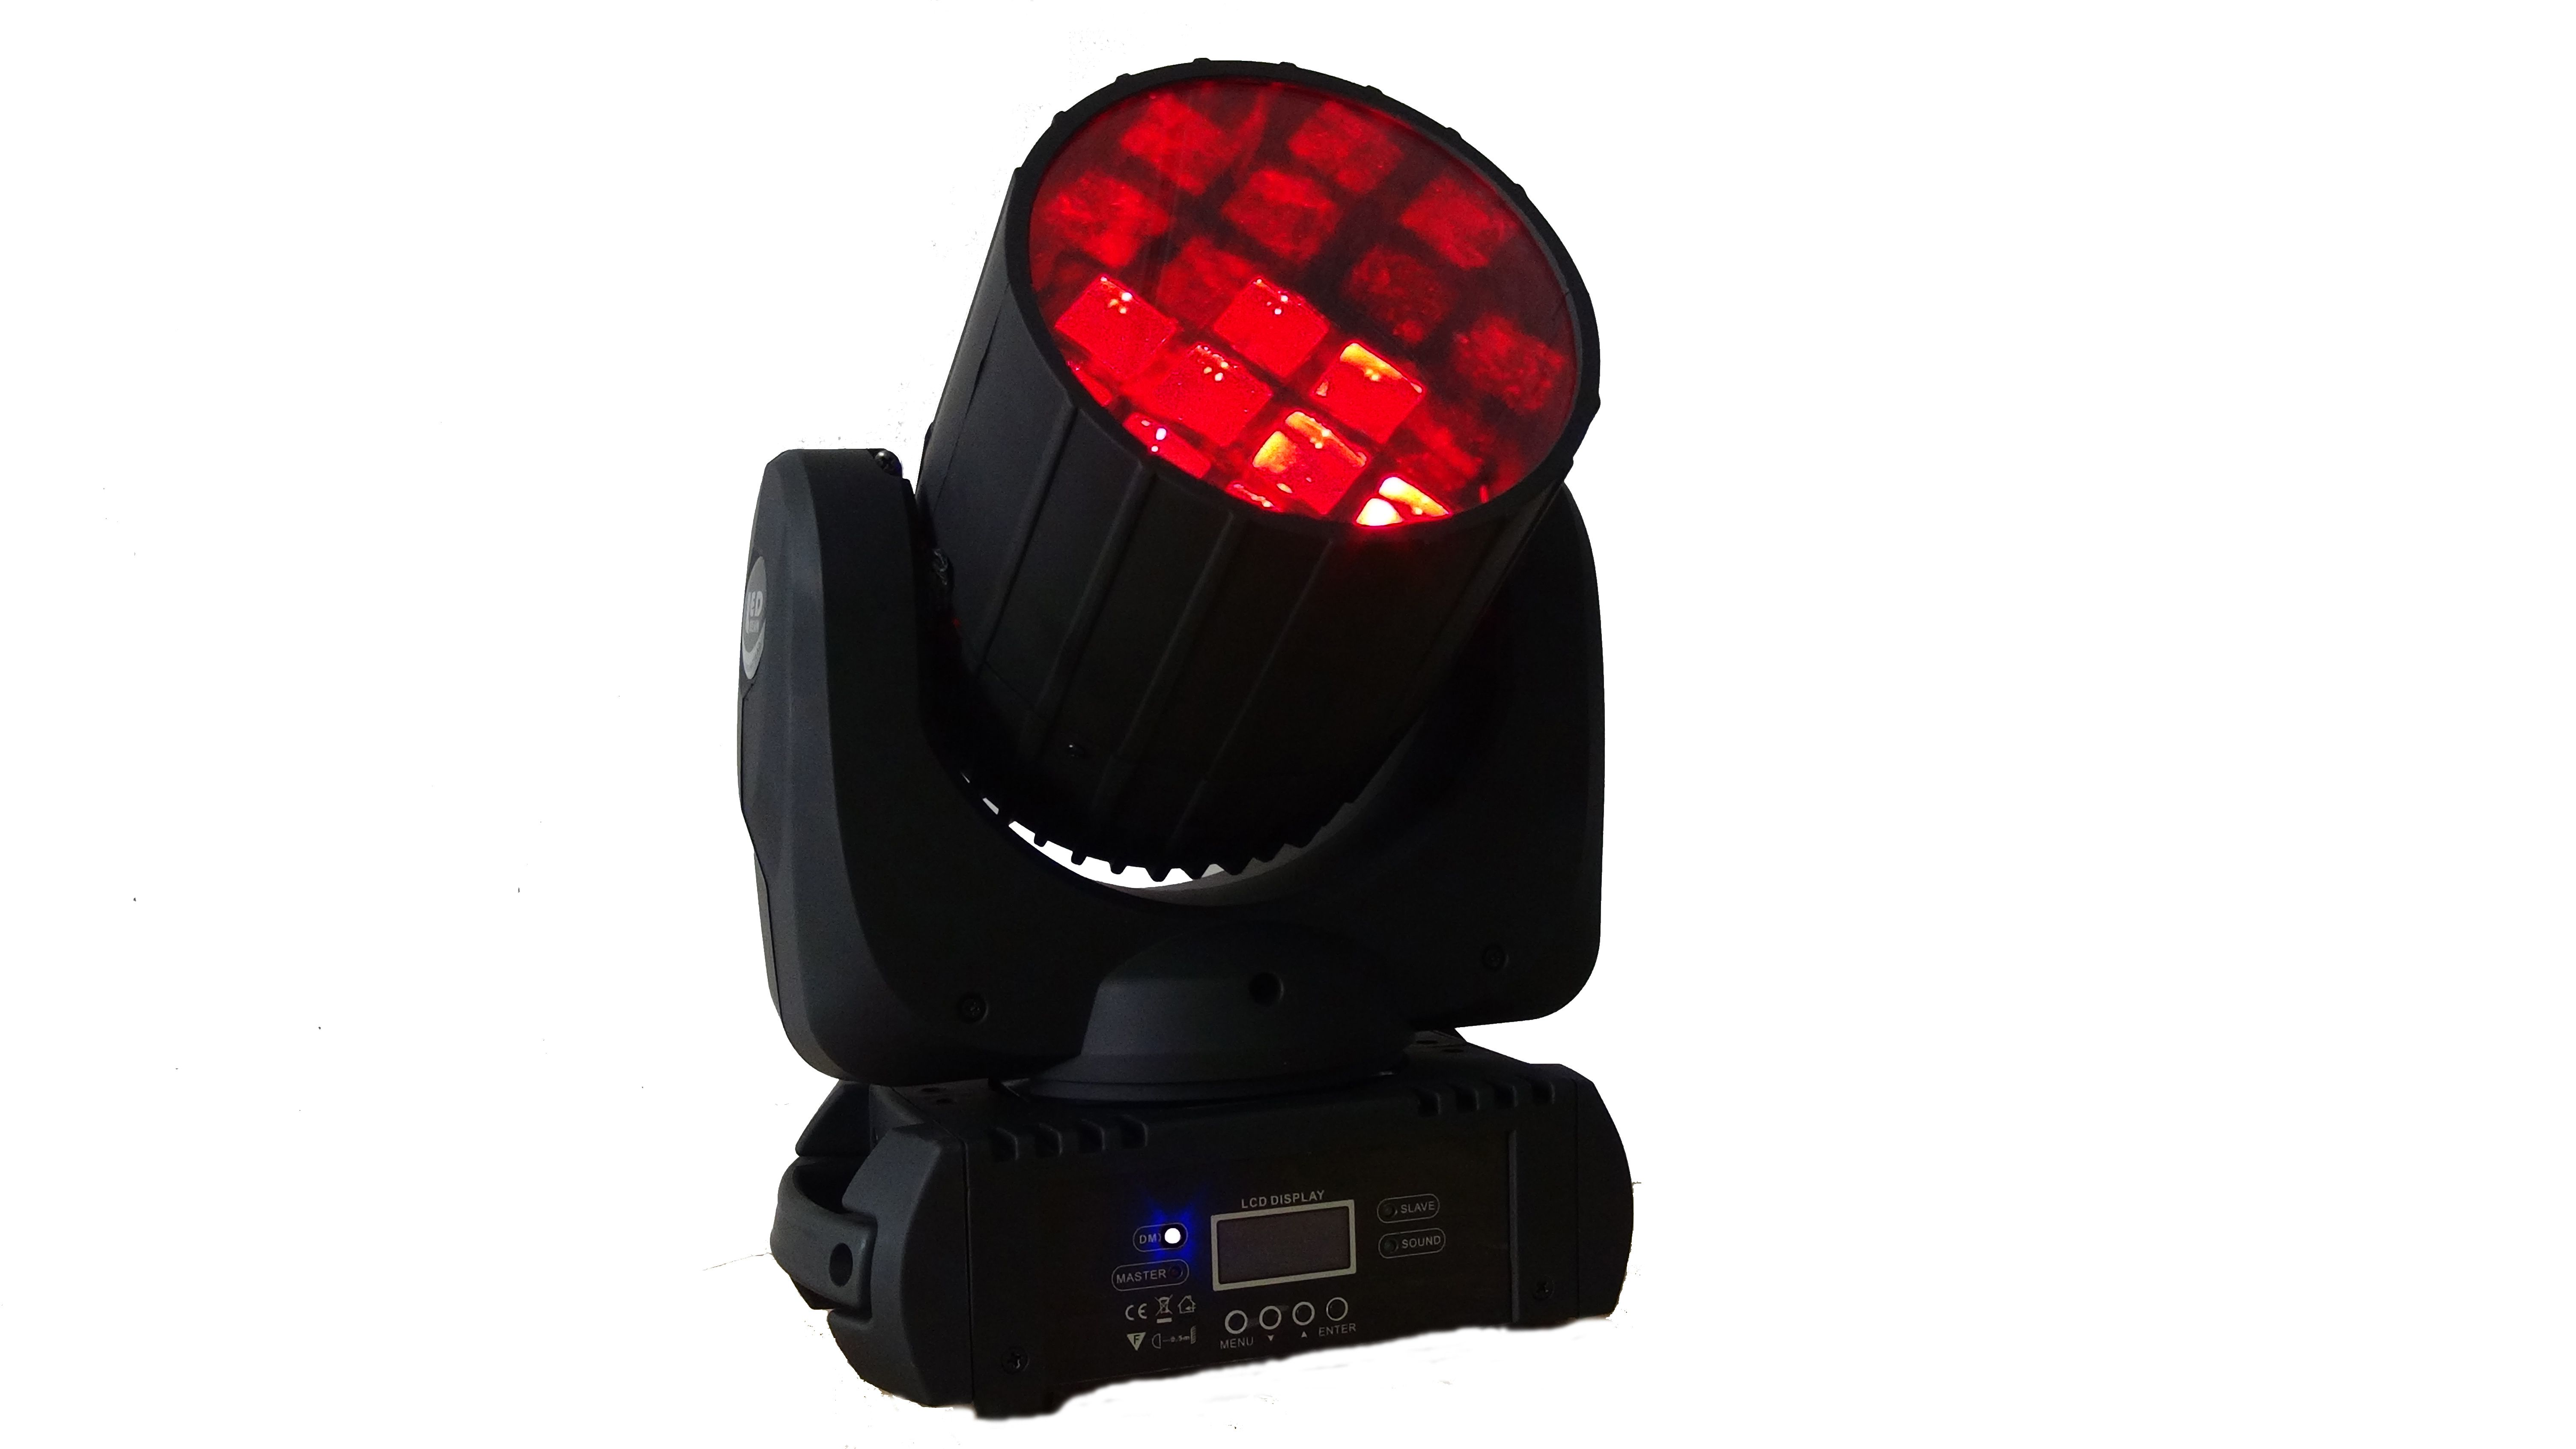 12pcs Rgbw 4 In 1 10w Cree Led Moving Head Light Https Www Facebook Com Wavelighting1 Cree Led Gobo Cree